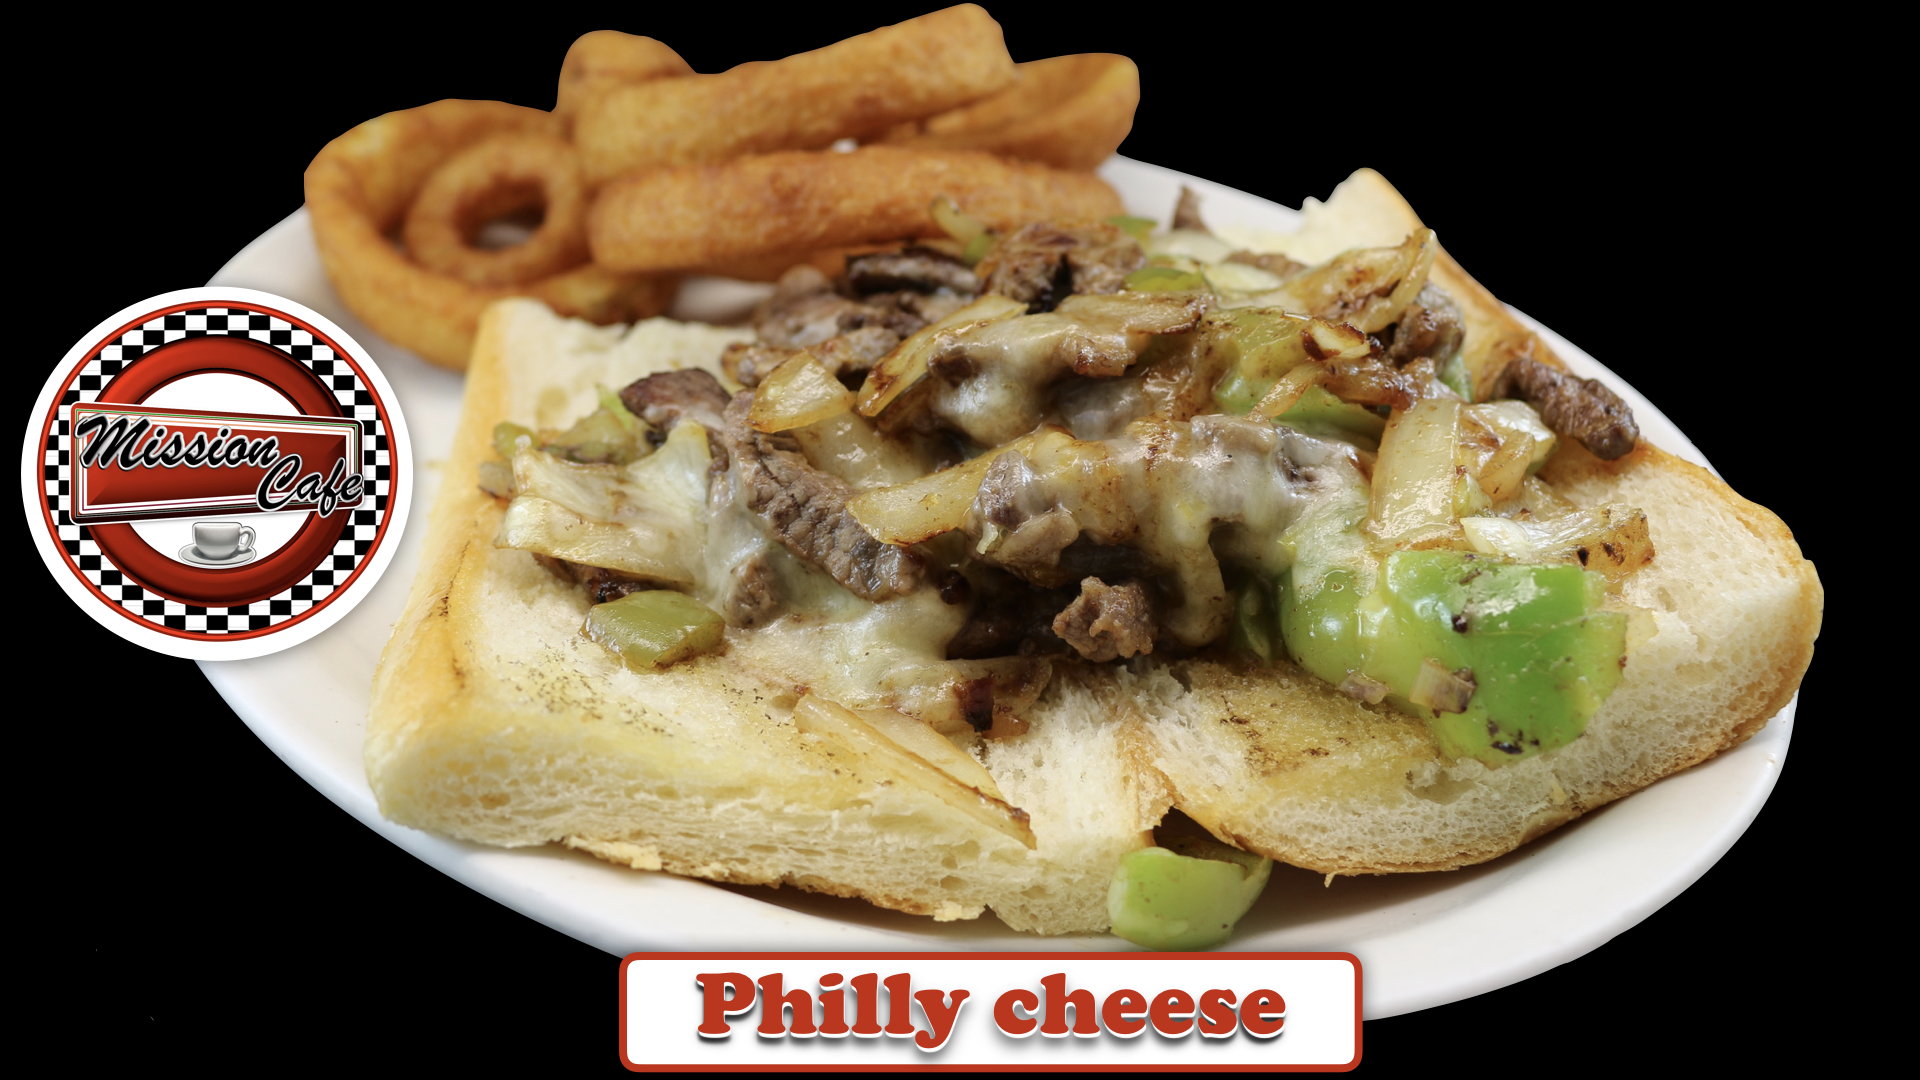 Philly cheese